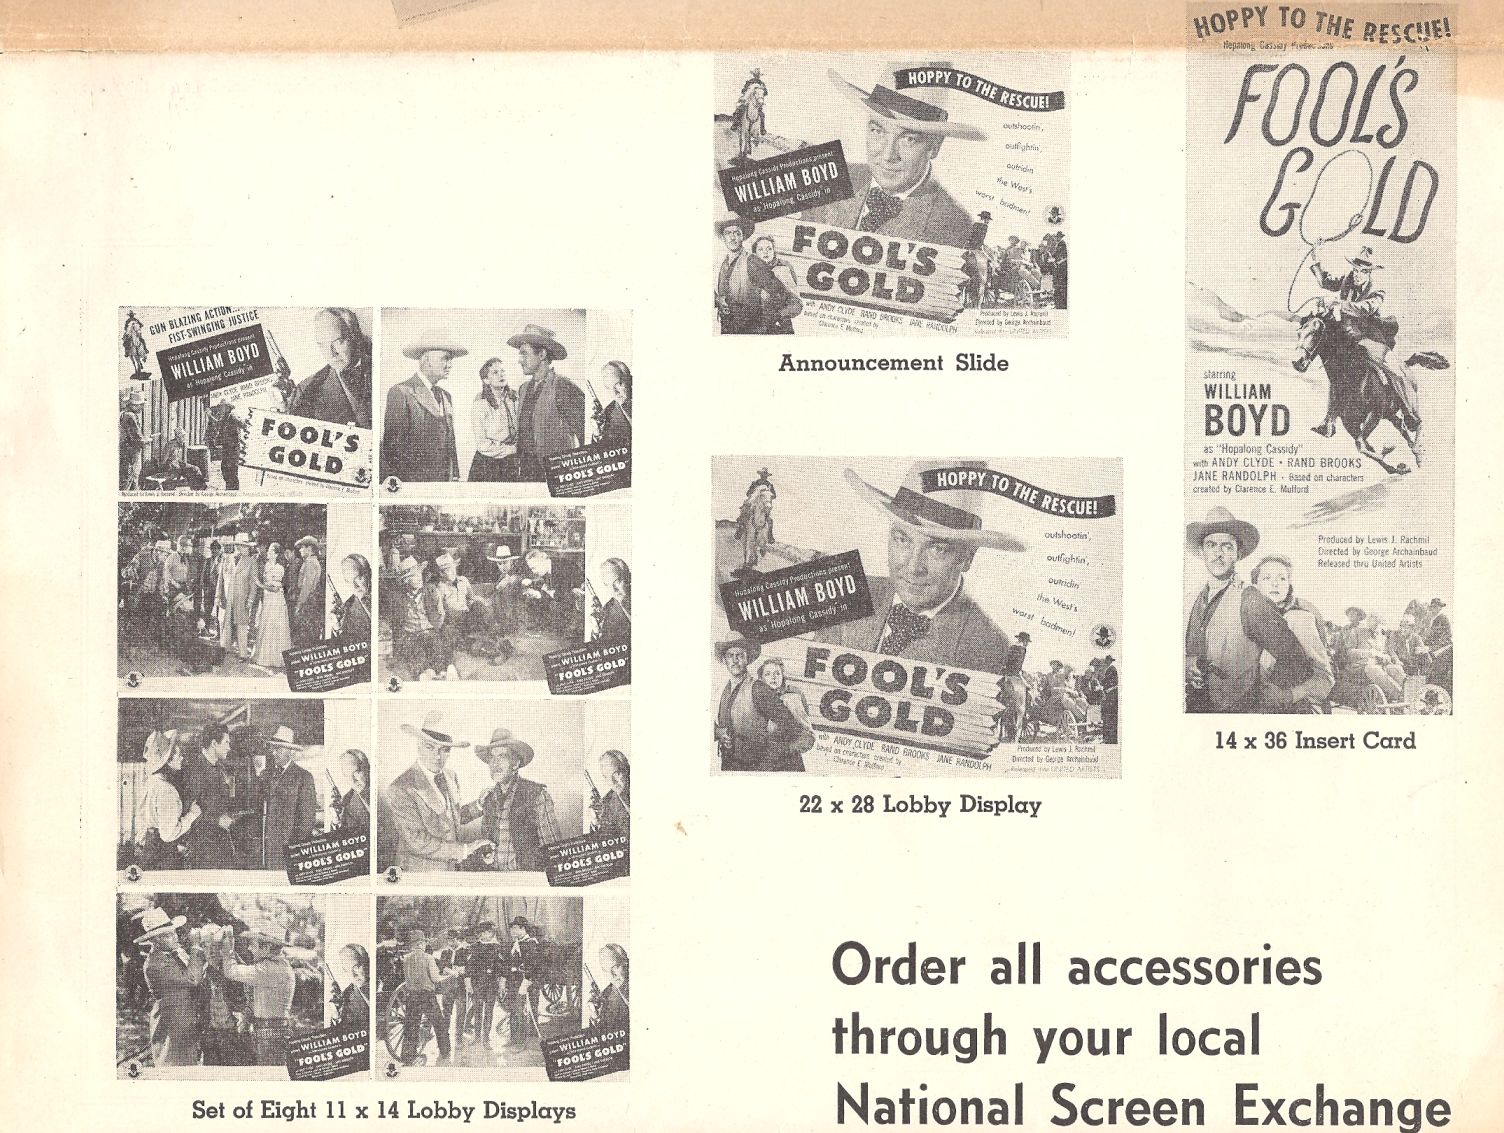 Steve Barclay, William Boyd, Rand Brooks, Andy Clyde, Earle Hodgins, Robert Emmett Keane, and Jane Randolph in Fool's Gold (1946)